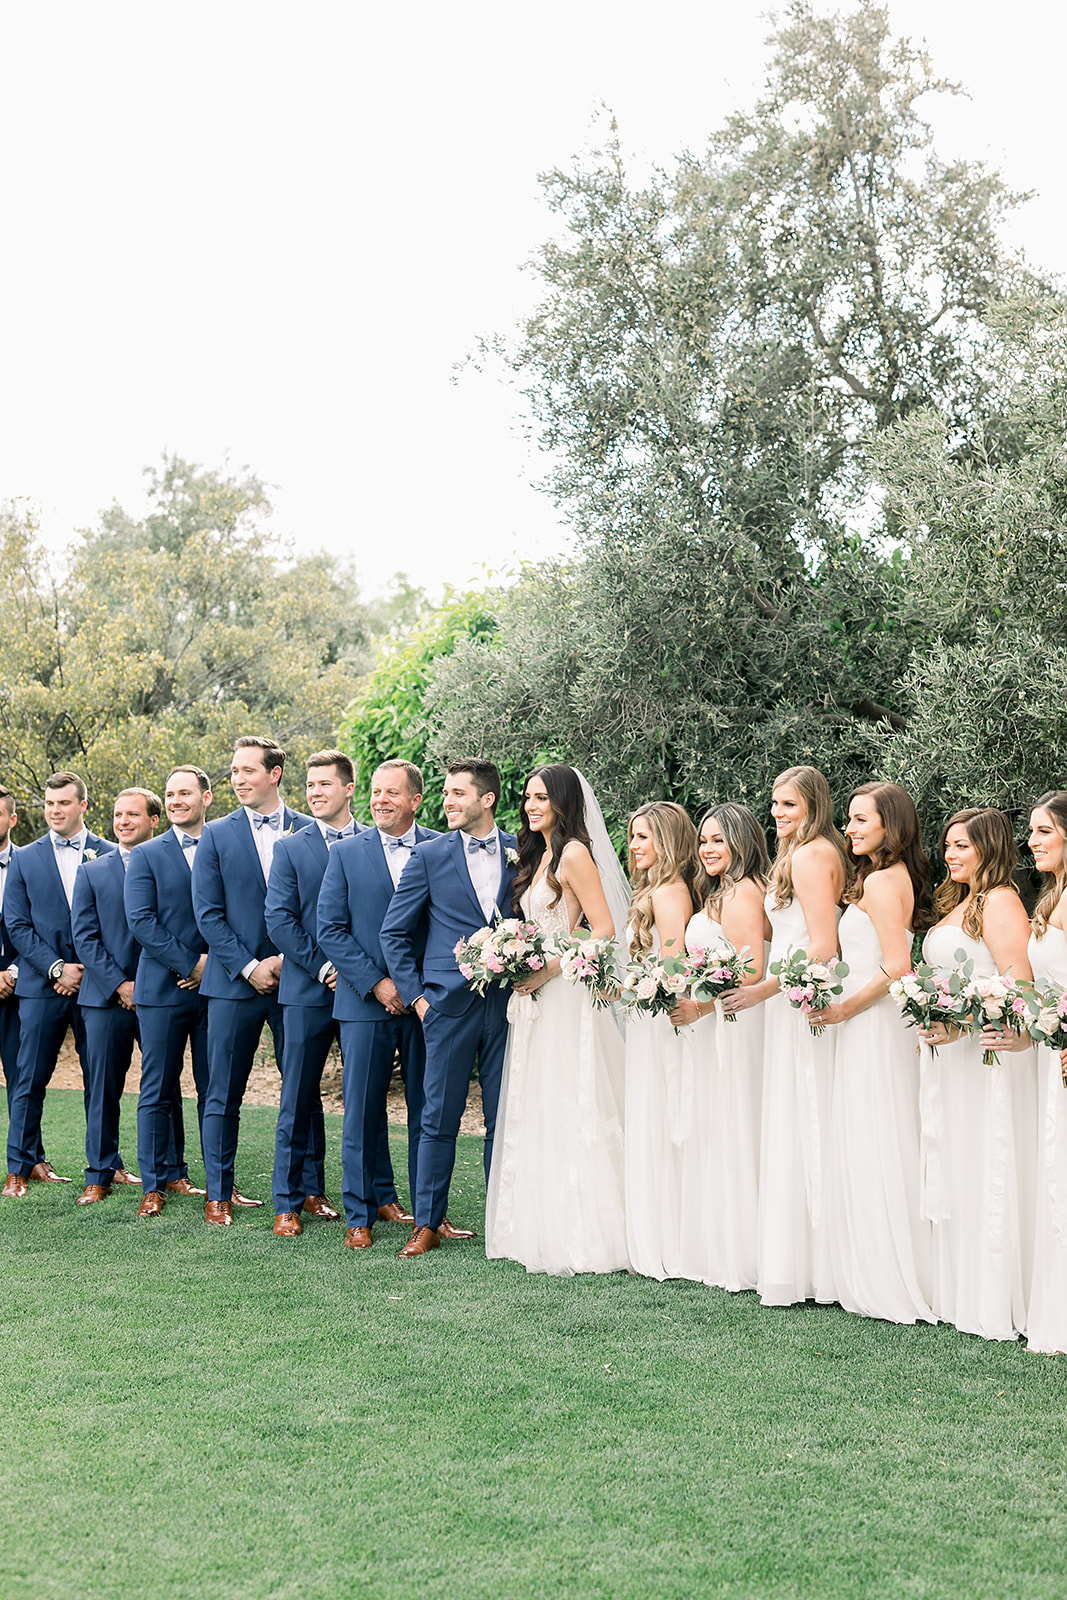 Phoenix-Scottsdale-Arizona-Wedding-Planner-Bridal Party